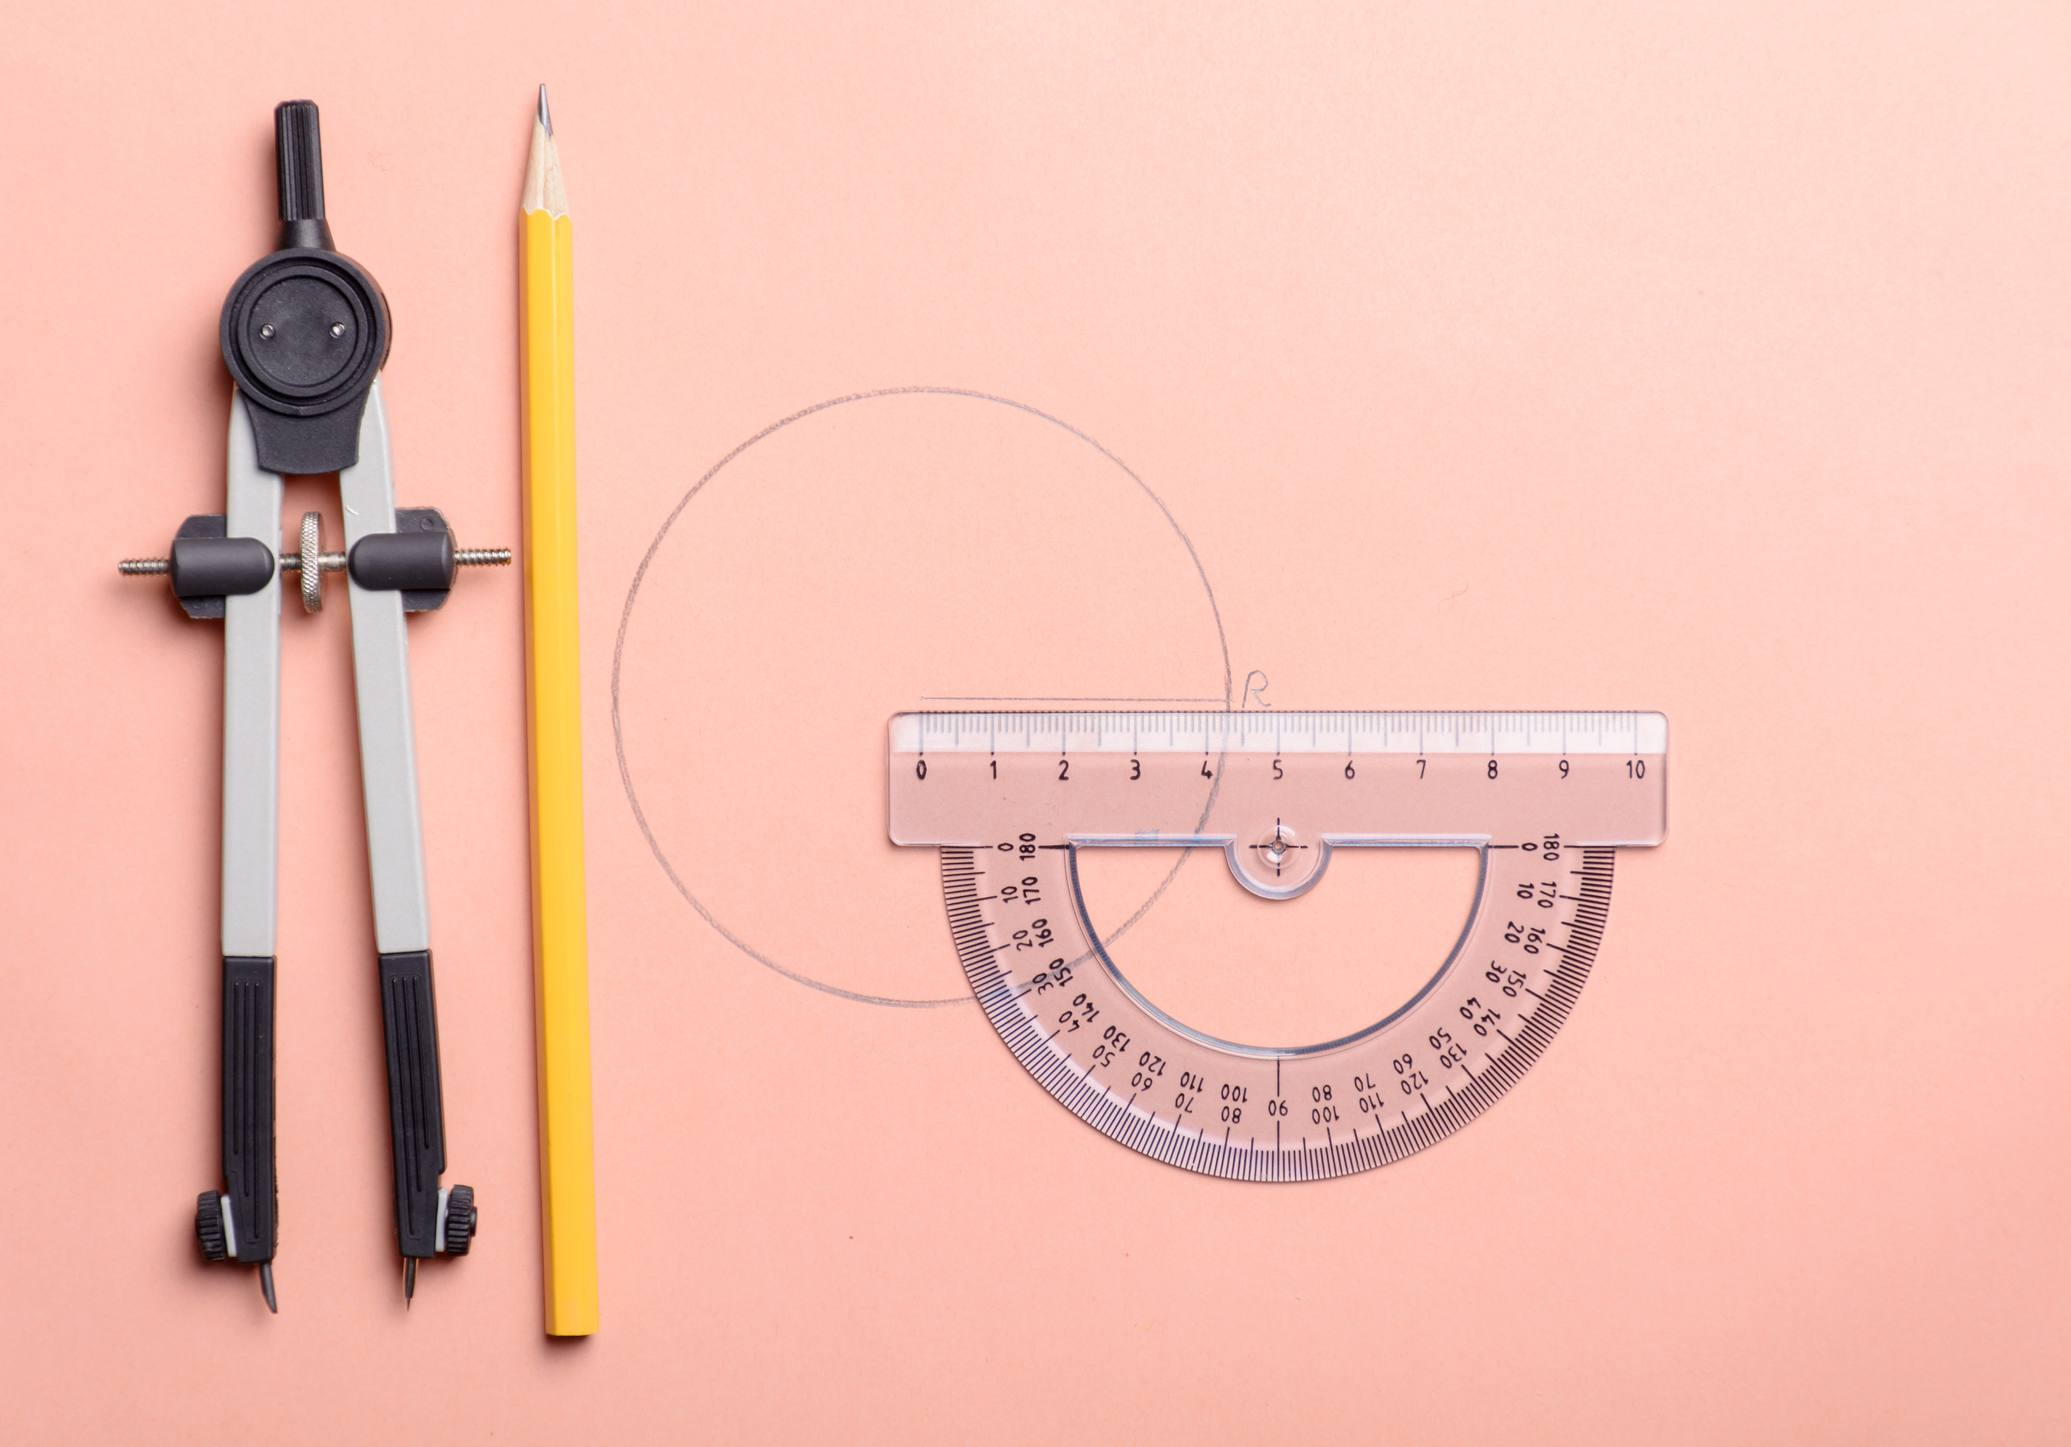 Two types of protractor with a pencil on a piece of paper.